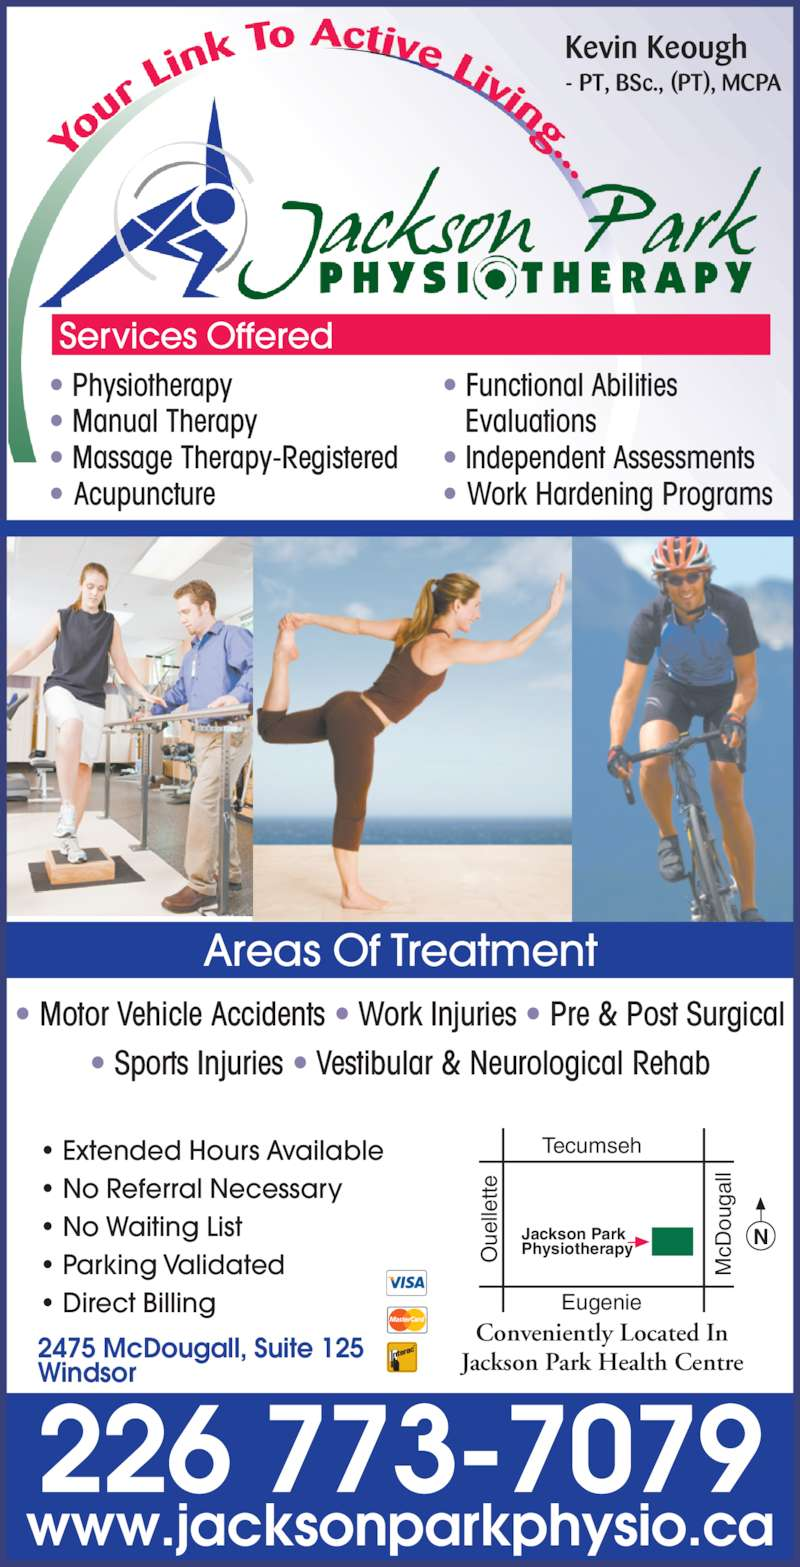 Jackson Park Physiotherapy (519-250-5775) - Display Ad - 226 773-7079 2475 McDougall, Suite 125 Windsor www.jacksonparkphysio.ca Services Offered Tecumseh Eugenie NJackson ParkPhysiotherapy ? Extended Hours Available ? No Referral Necessary ? No Waiting List ? Parking Validated ? Direct Billing ? Motor Vehicle Accidents ? Work Injuries ? Pre & Post Surgical ? Sports Injuries ? Vestibular & Neurological Rehab Areas Of Treatment Kevin Keough - PT, BSc., (PT), MCPA ? Physiotherapy ? Manual Therapy ? Massage Therapy-Registered tte ? Acupuncture ? Functional Abilities     Evaluations ? Independent Assessments ? Work Hardening Programs Conveniently Located In Jackson Park Health Centre cD ou ga ll ue lle